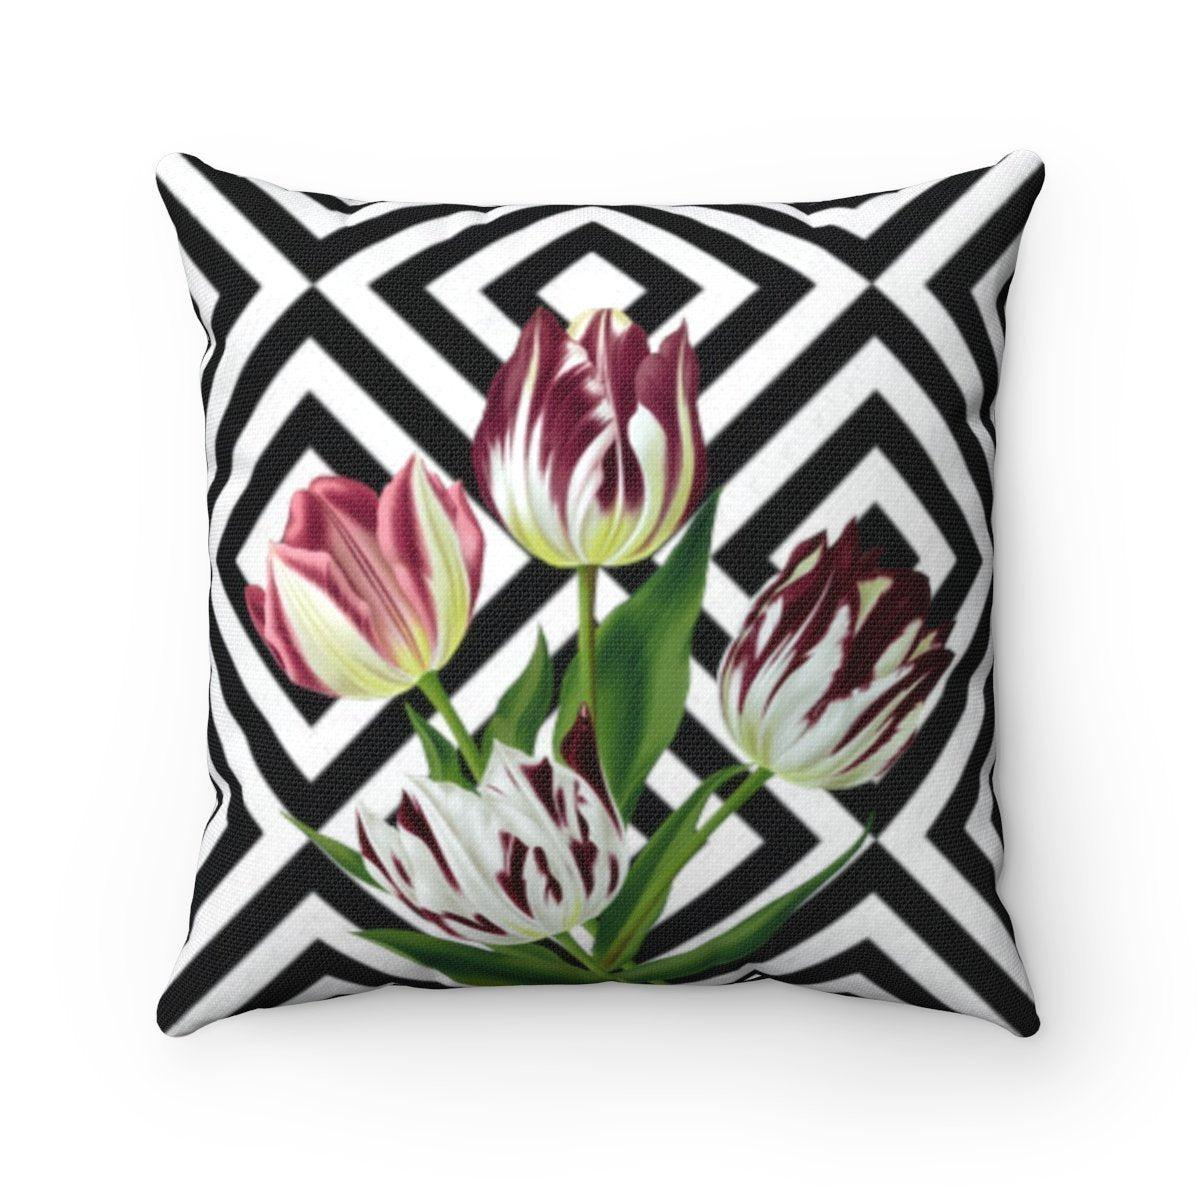 Luxury | Floral abstract decorative cushion cover-Home Decor - Decorative Accents - Pillows & Throws - Decorative Pillows-Maison d'Elite-14x14-Très Elite